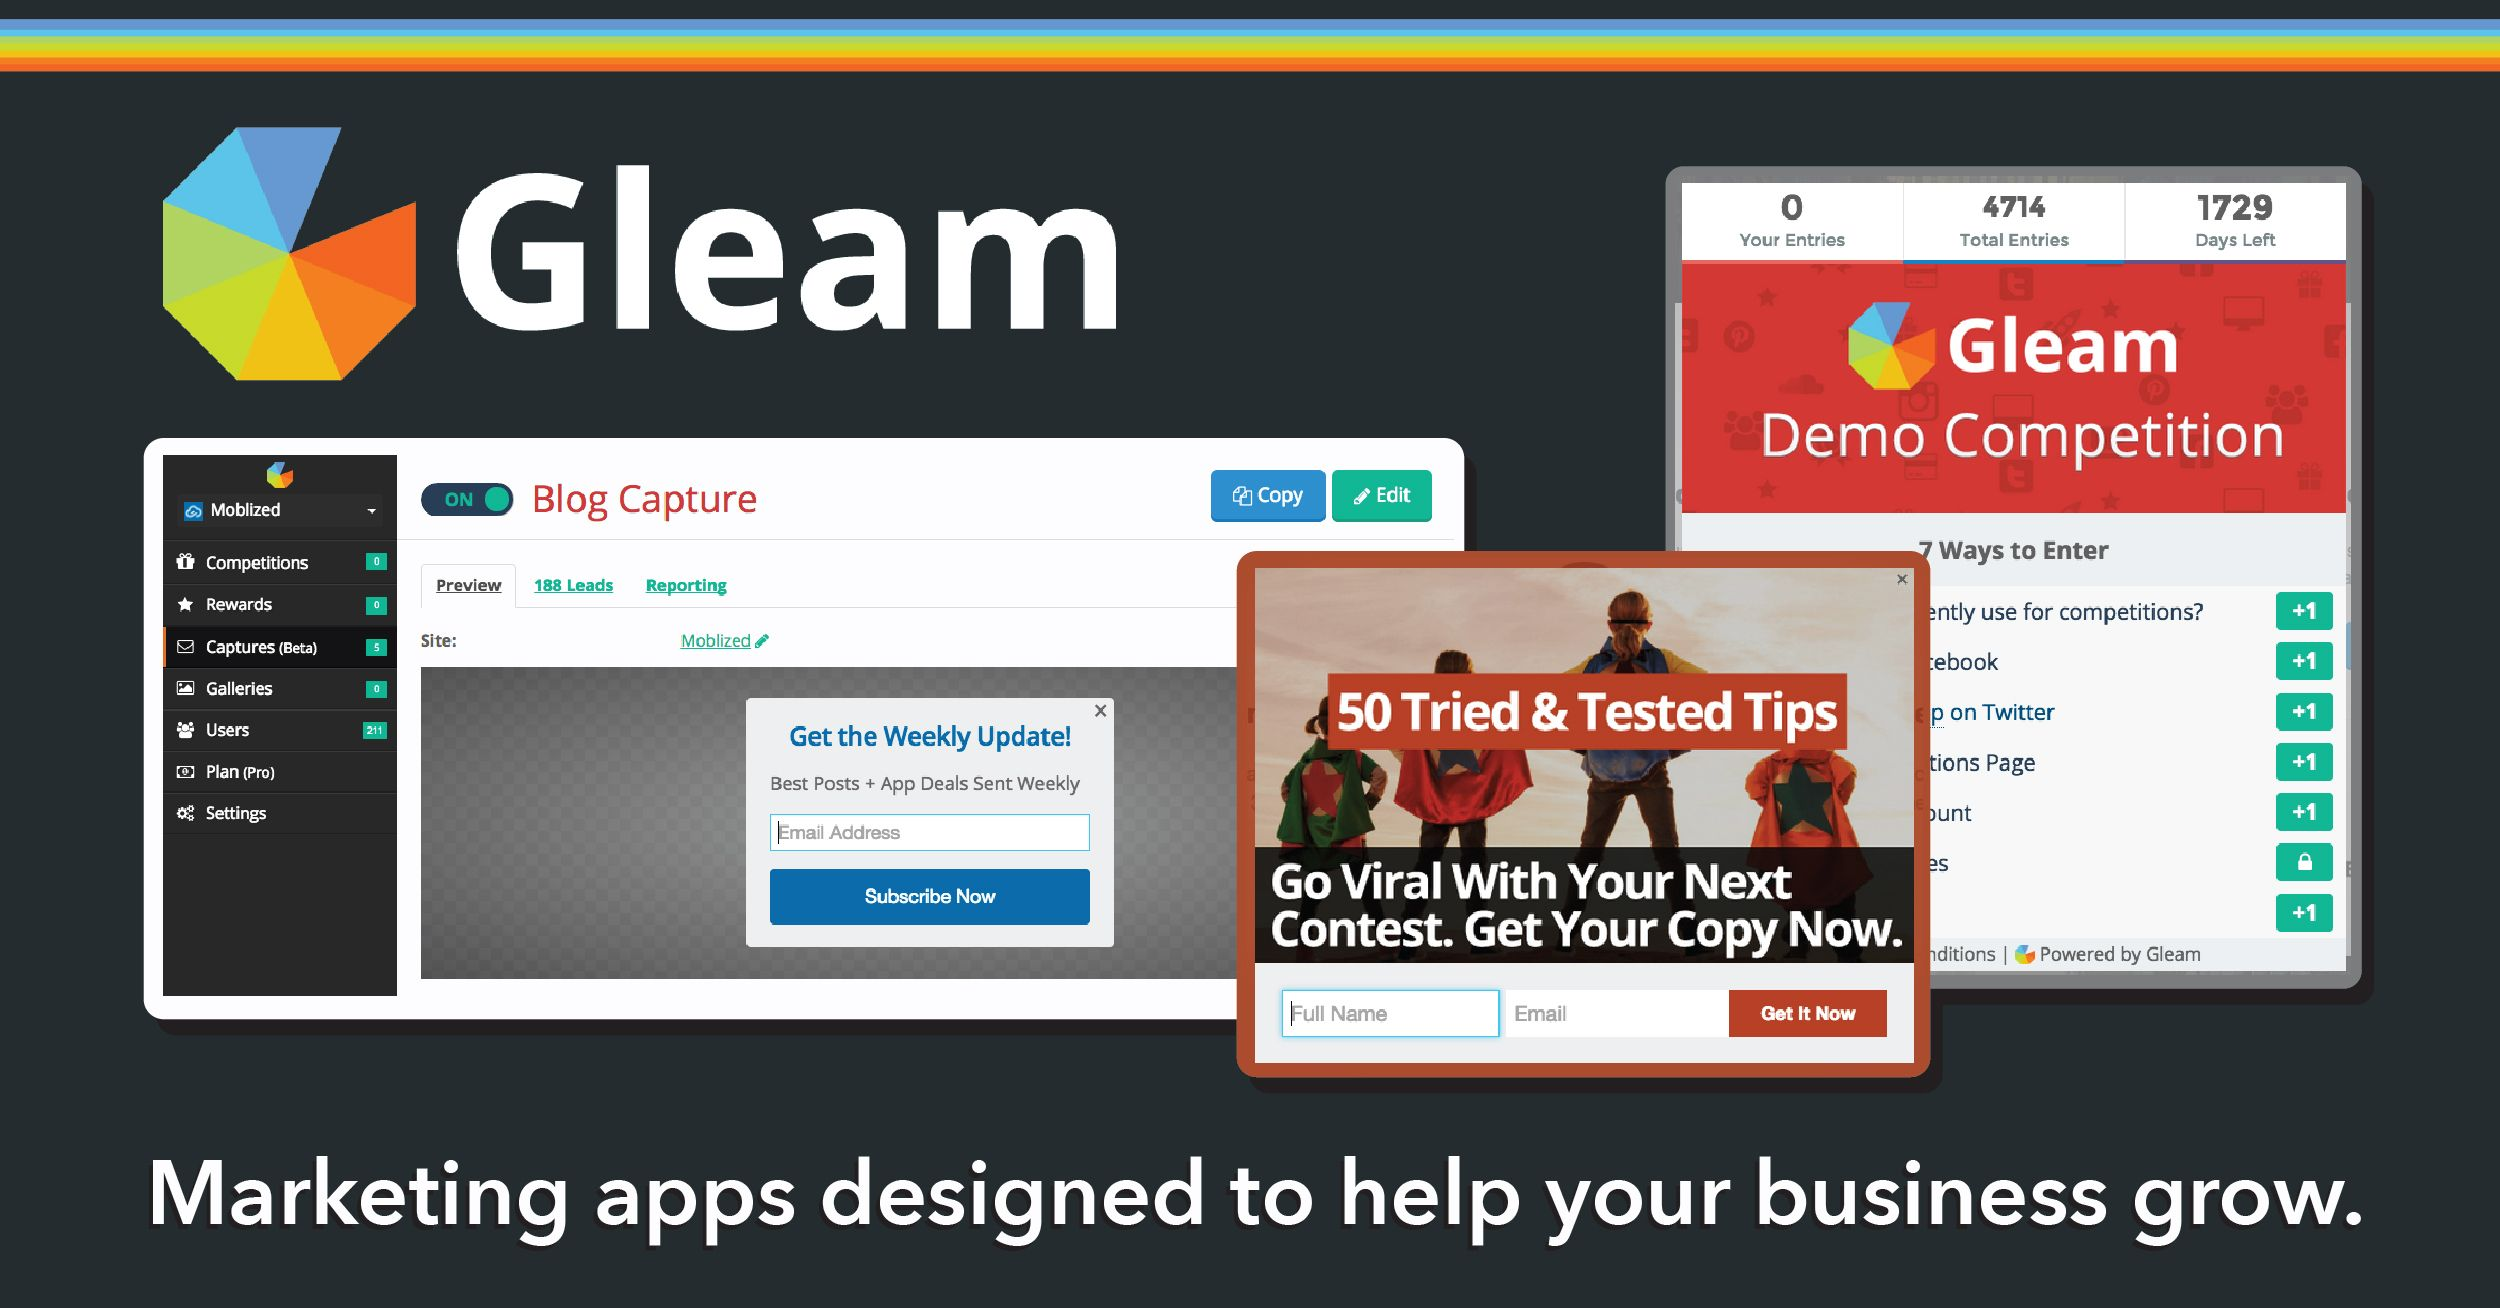 Gleam - A suite of engaging marketing tools to help grow your business. Use it to run contests, capture emails, and offer customer rewards. Works with MailChimp, SalesForce, Campaign Monitor, and more... #AppoftheDay